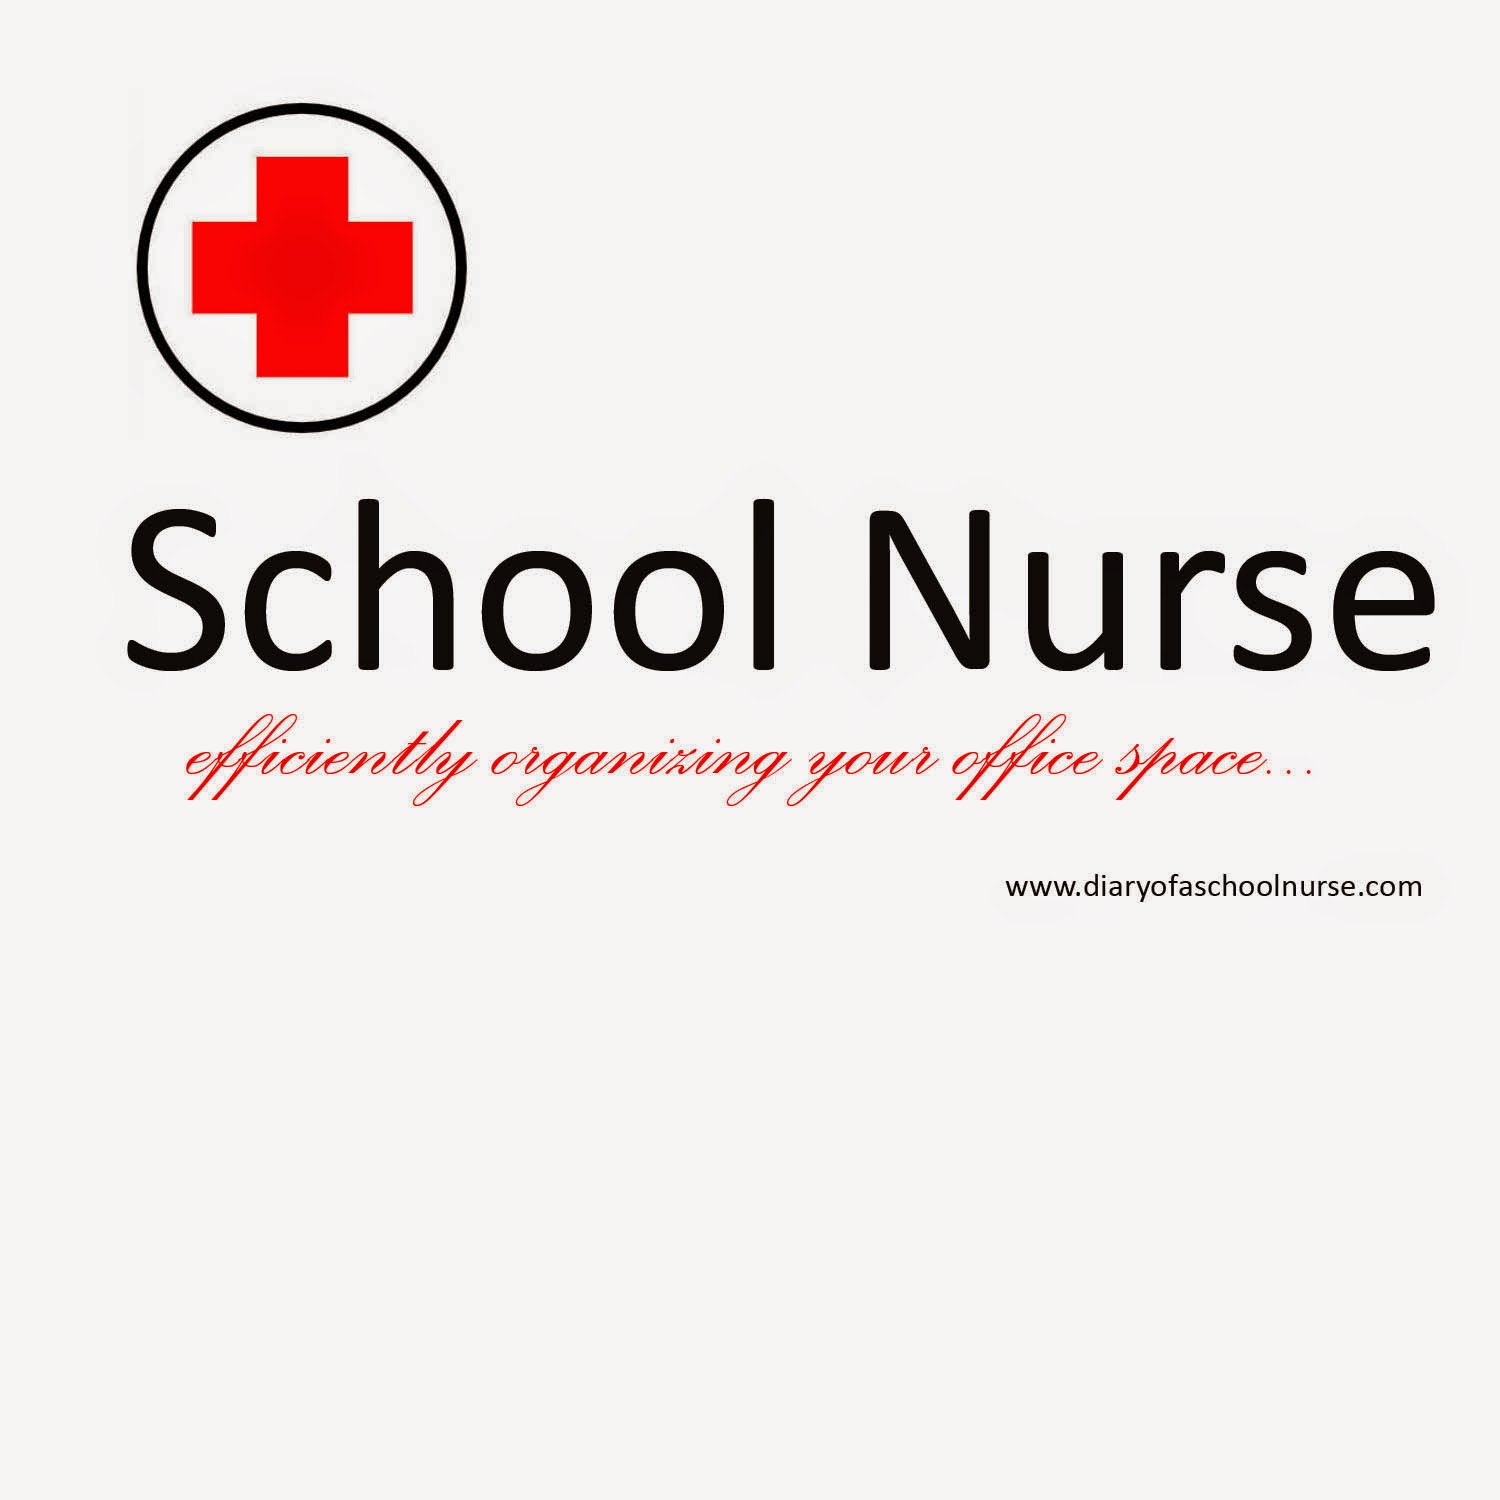 Diary Of A School Nurse: You're 'HI'- high?